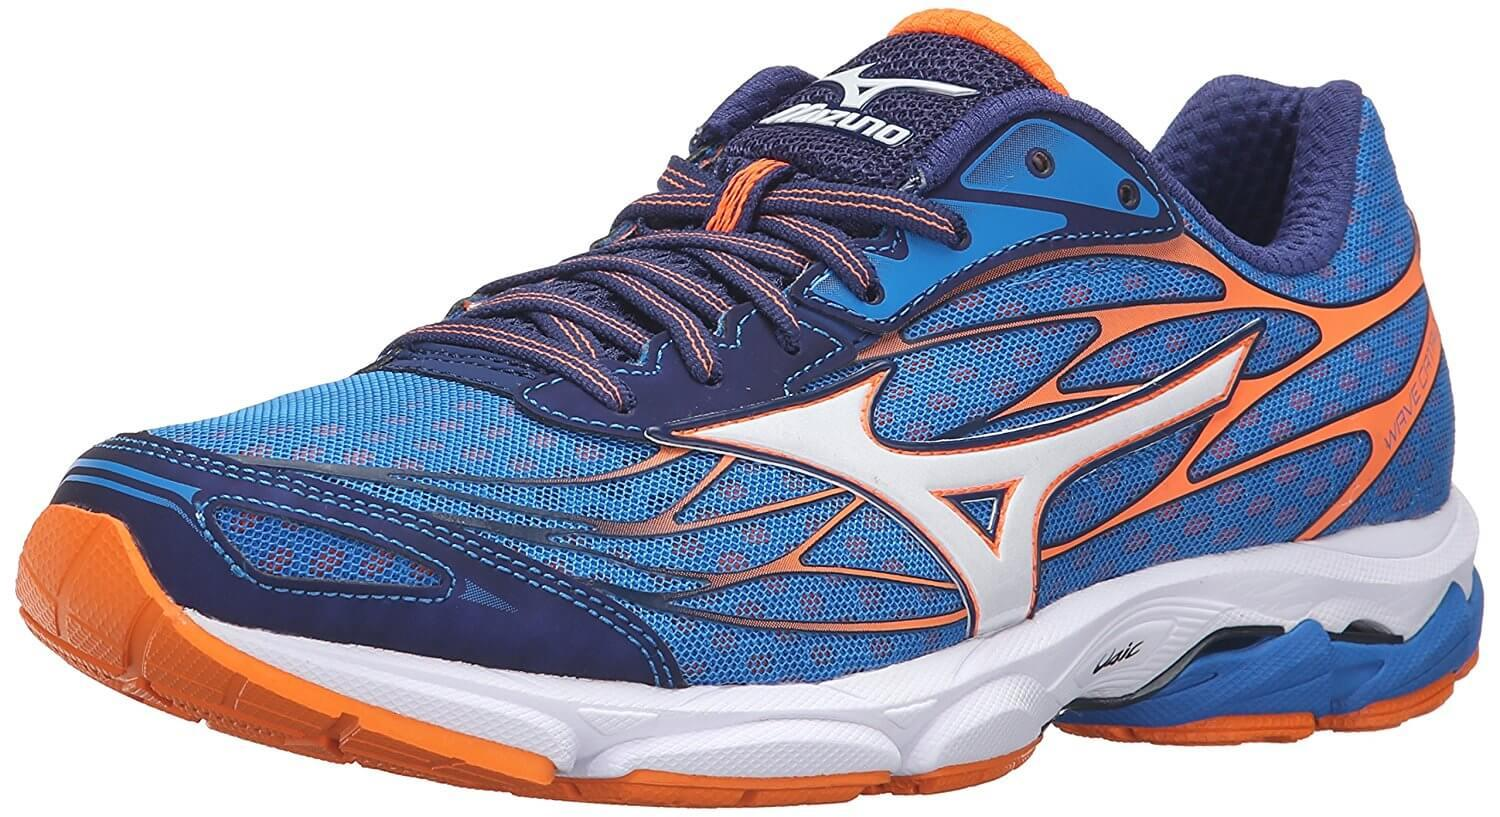 7. Mizuno Wave Catalyst